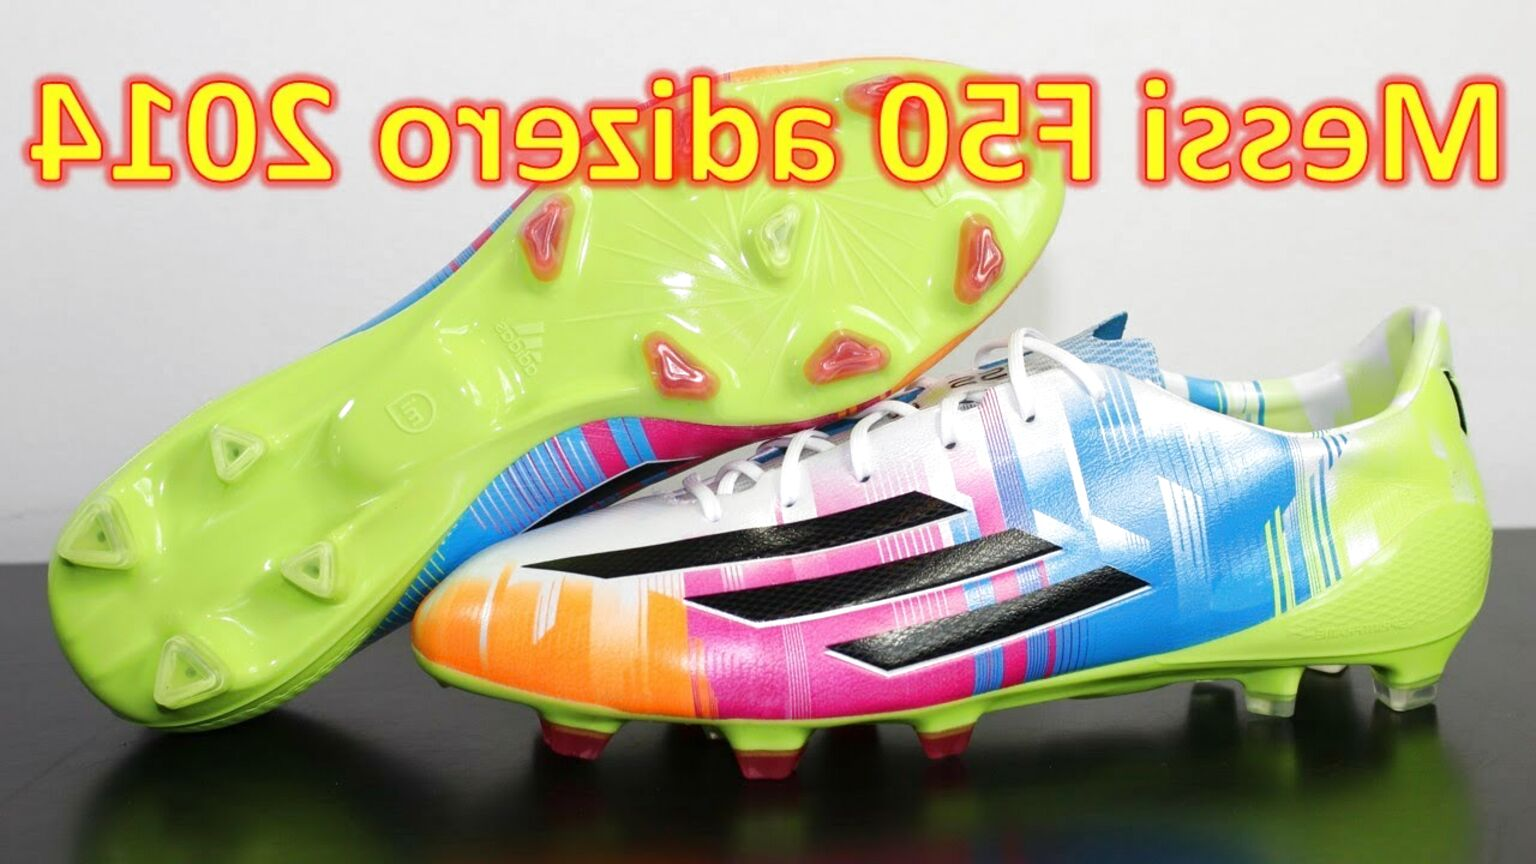 f50 boots for sale